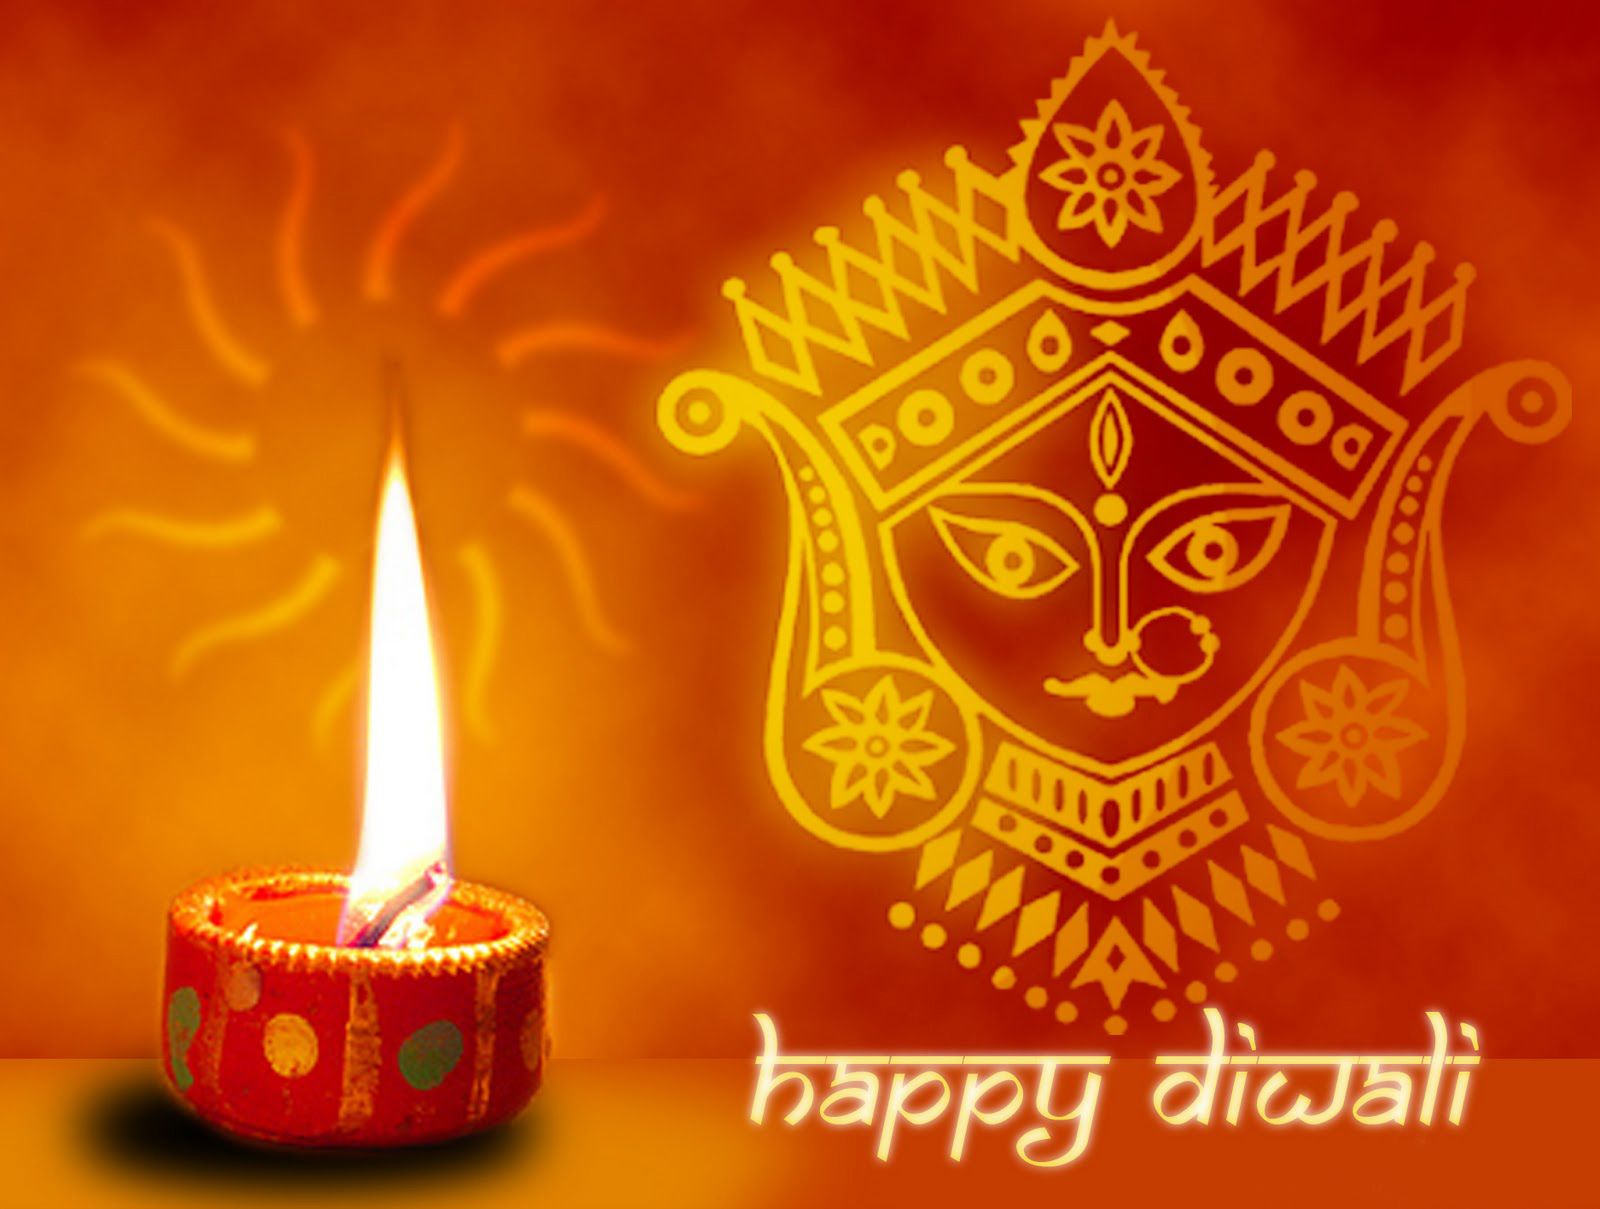 Happy diwali celebration festival hd wallpapers | Happy Diwali HD ... for Deepavali 2017 Celebration  588gtk